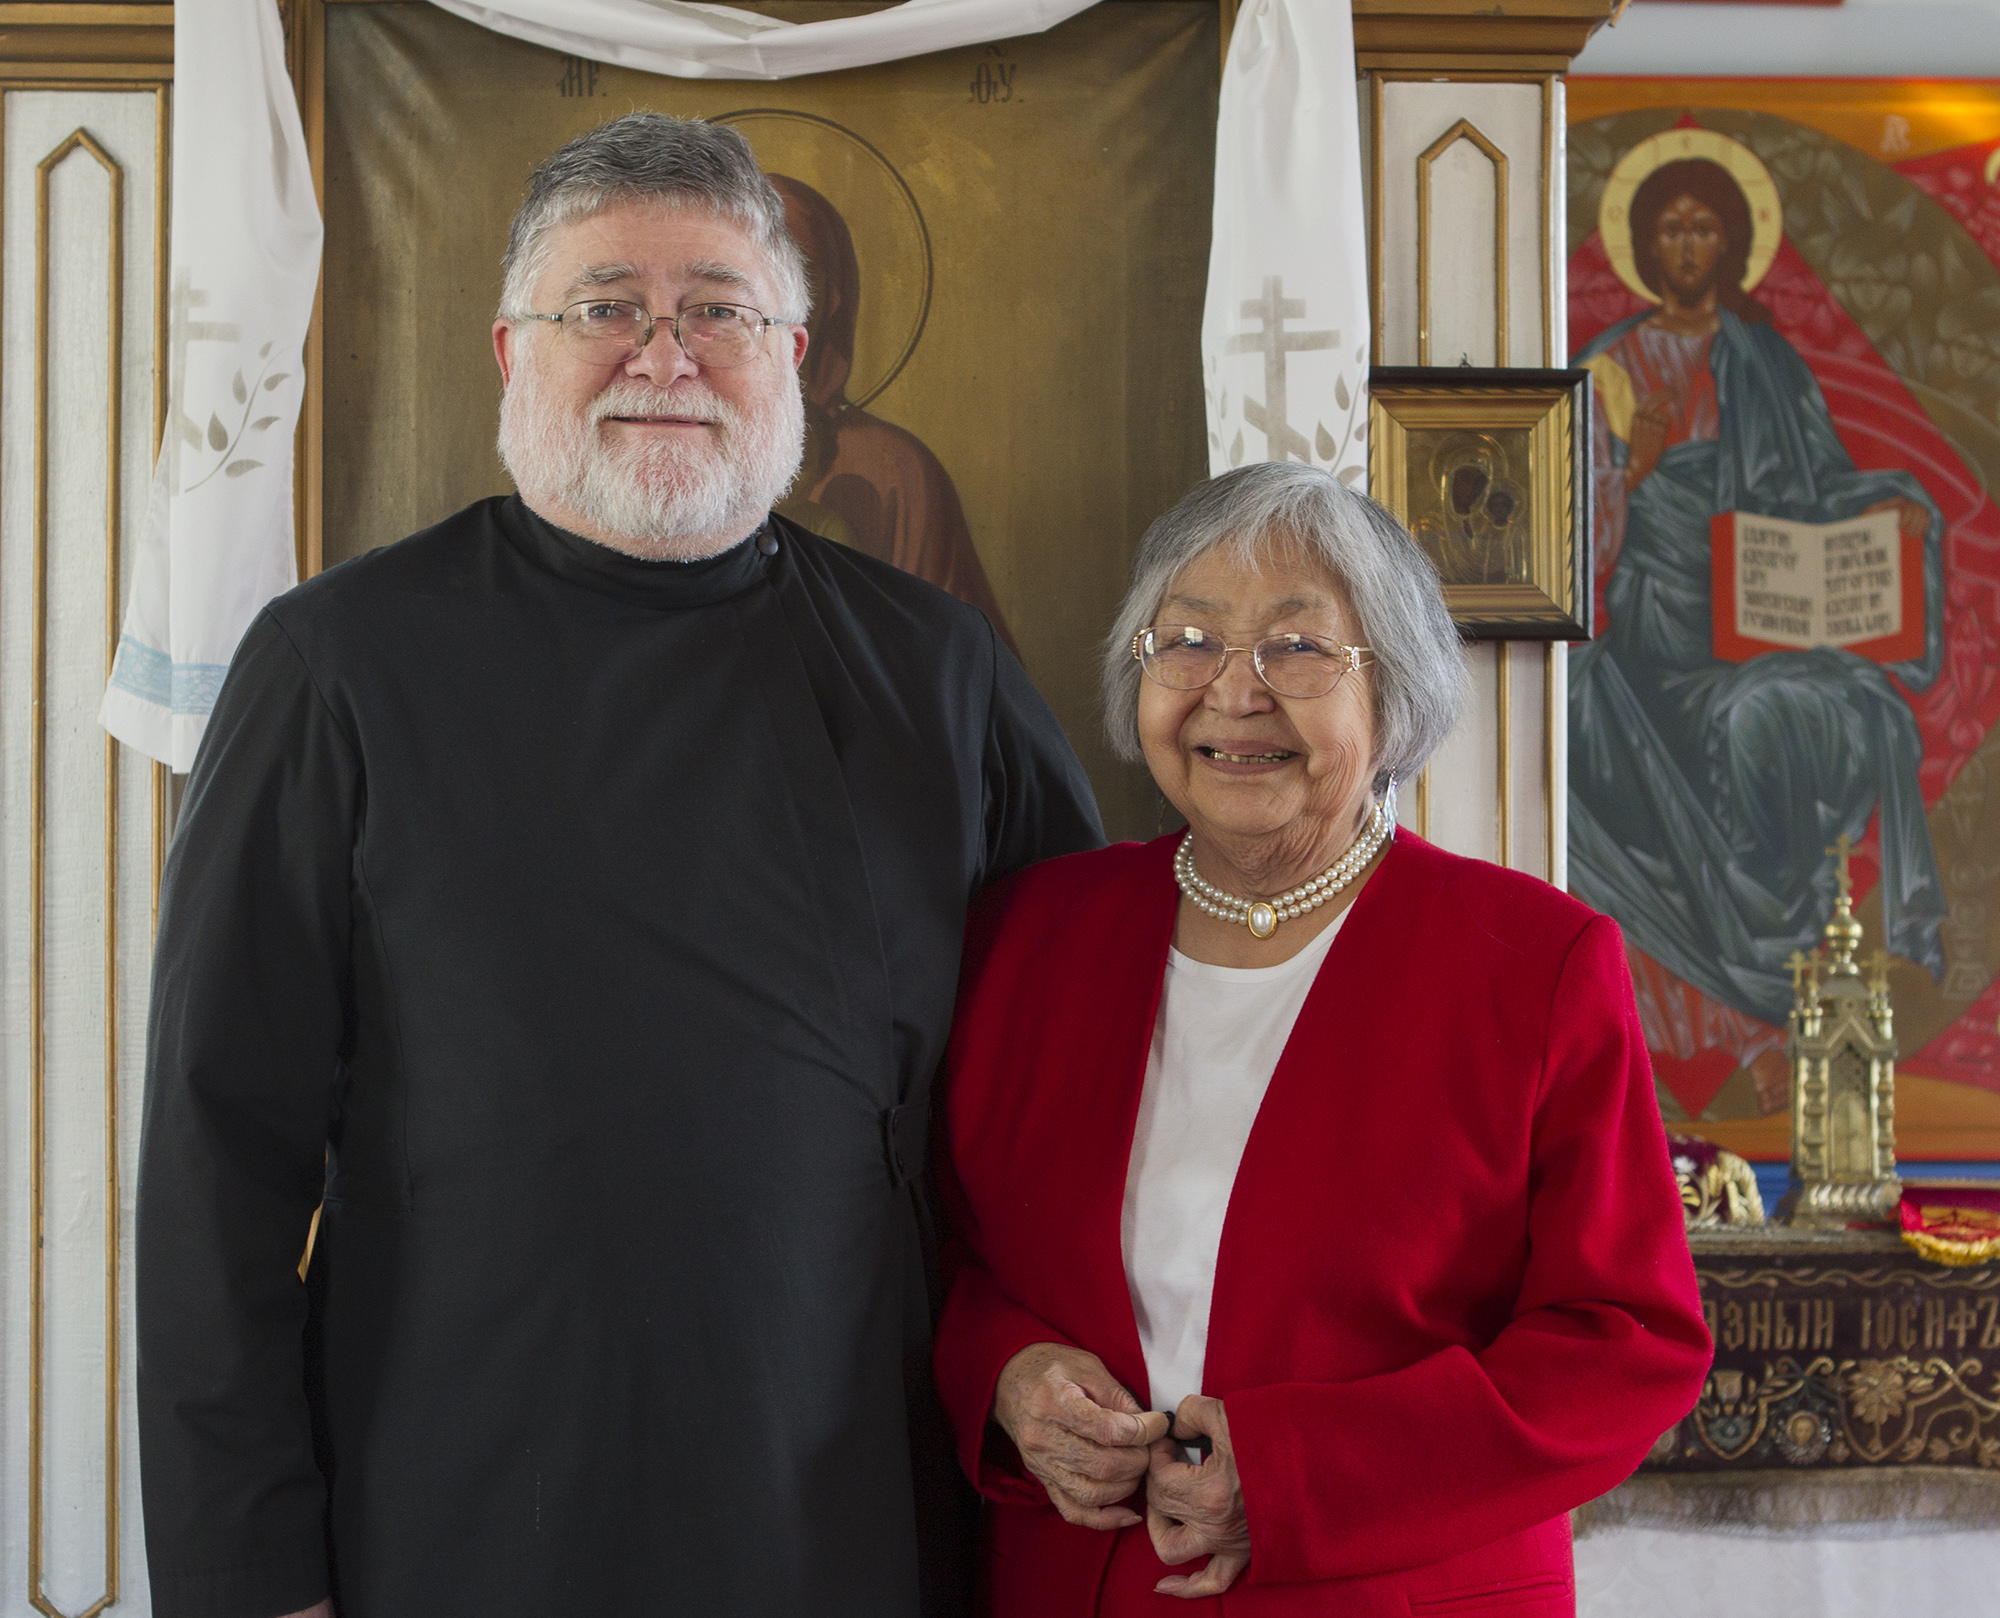 Dick and Nora Dauenhauer at St. Nicholas Russian Orthodox Church on April 24, 2011. (Photo by Brian Wallace)